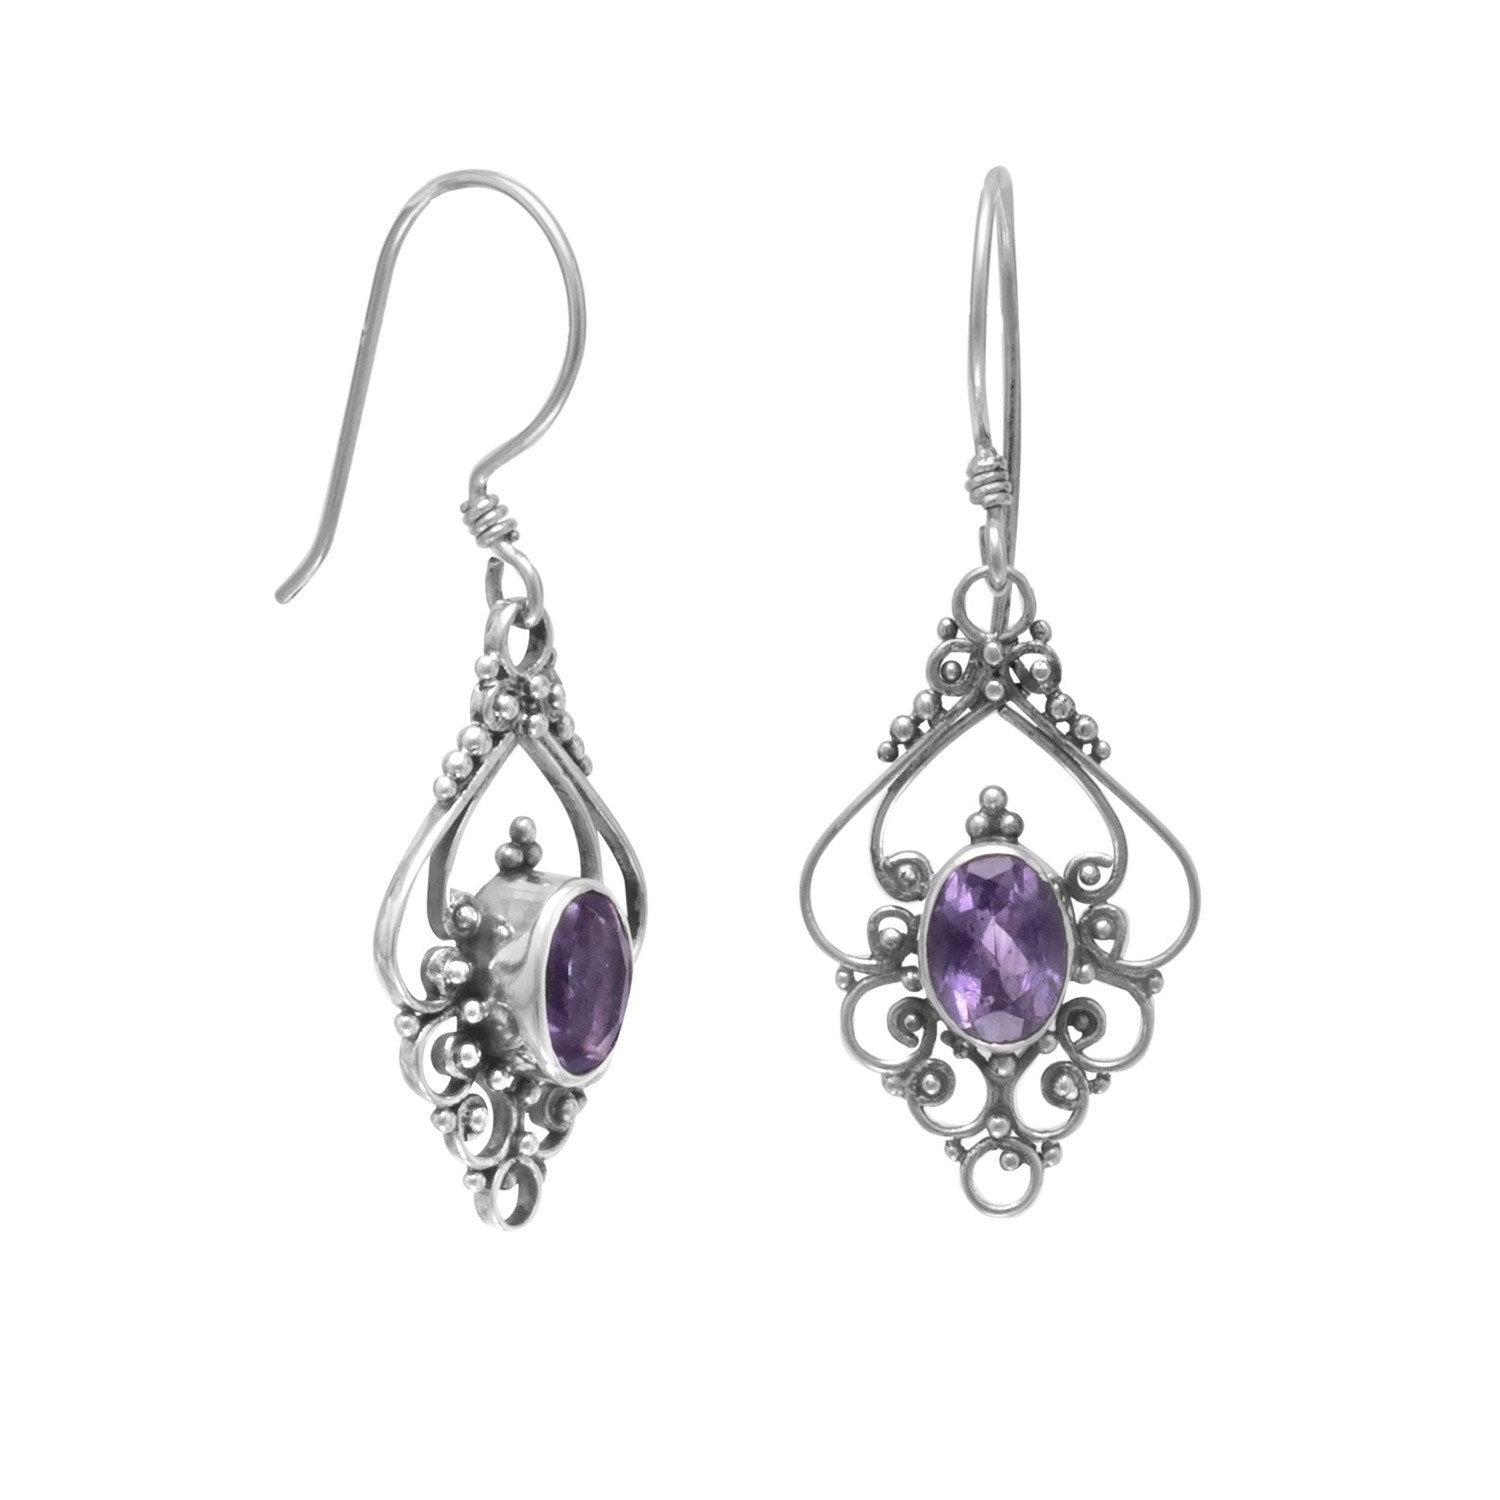 Scroll Design Amethyst French Wire Earrings - Rocky Mt. Outlet Inc - Shop & Save 24/7